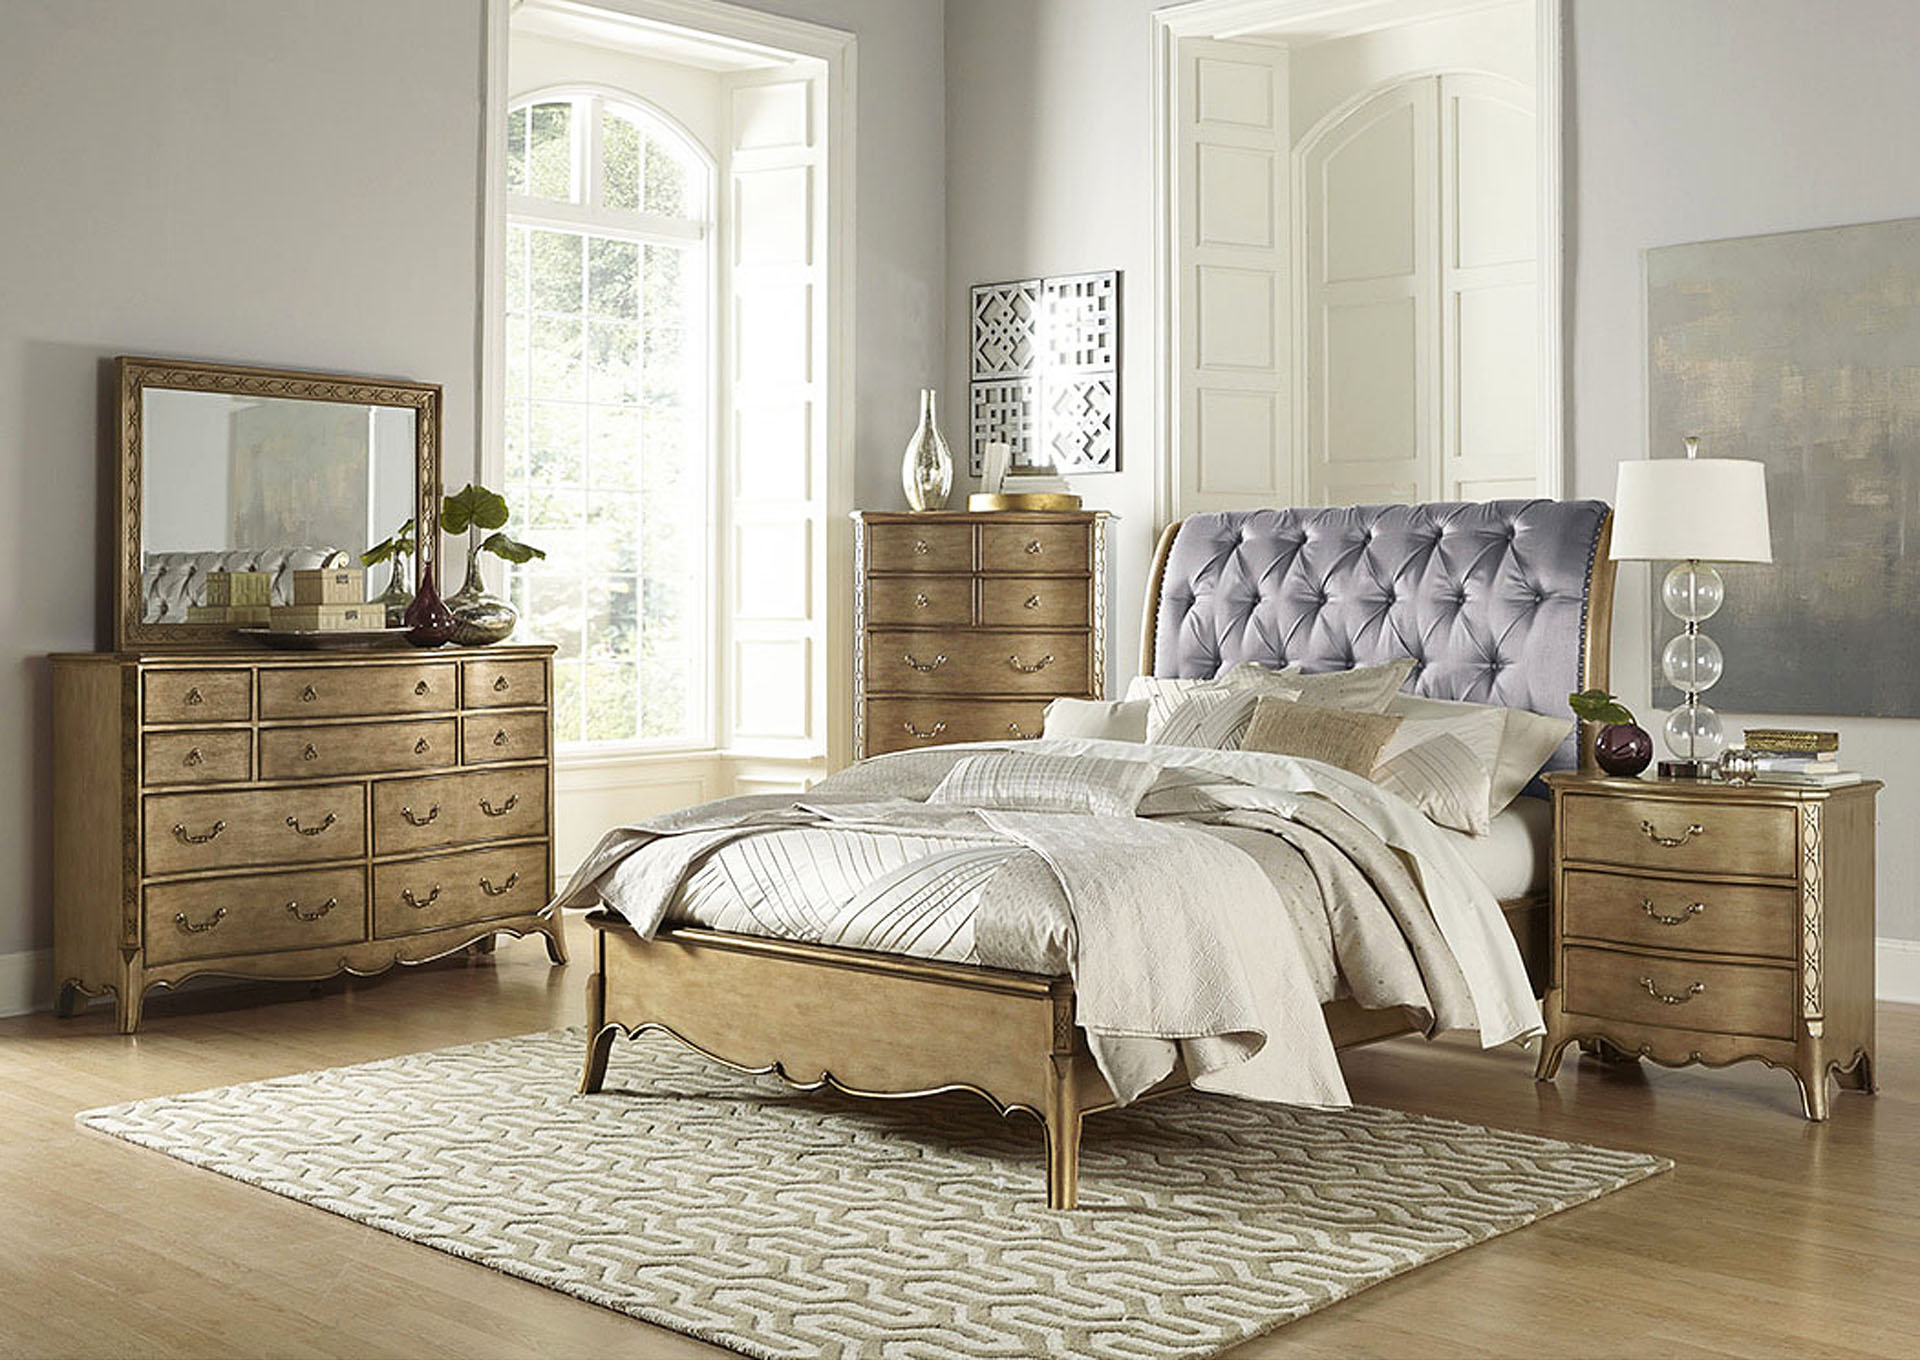 Chambord Gold Upholstered Queen Sleigh Bed,Homelegance